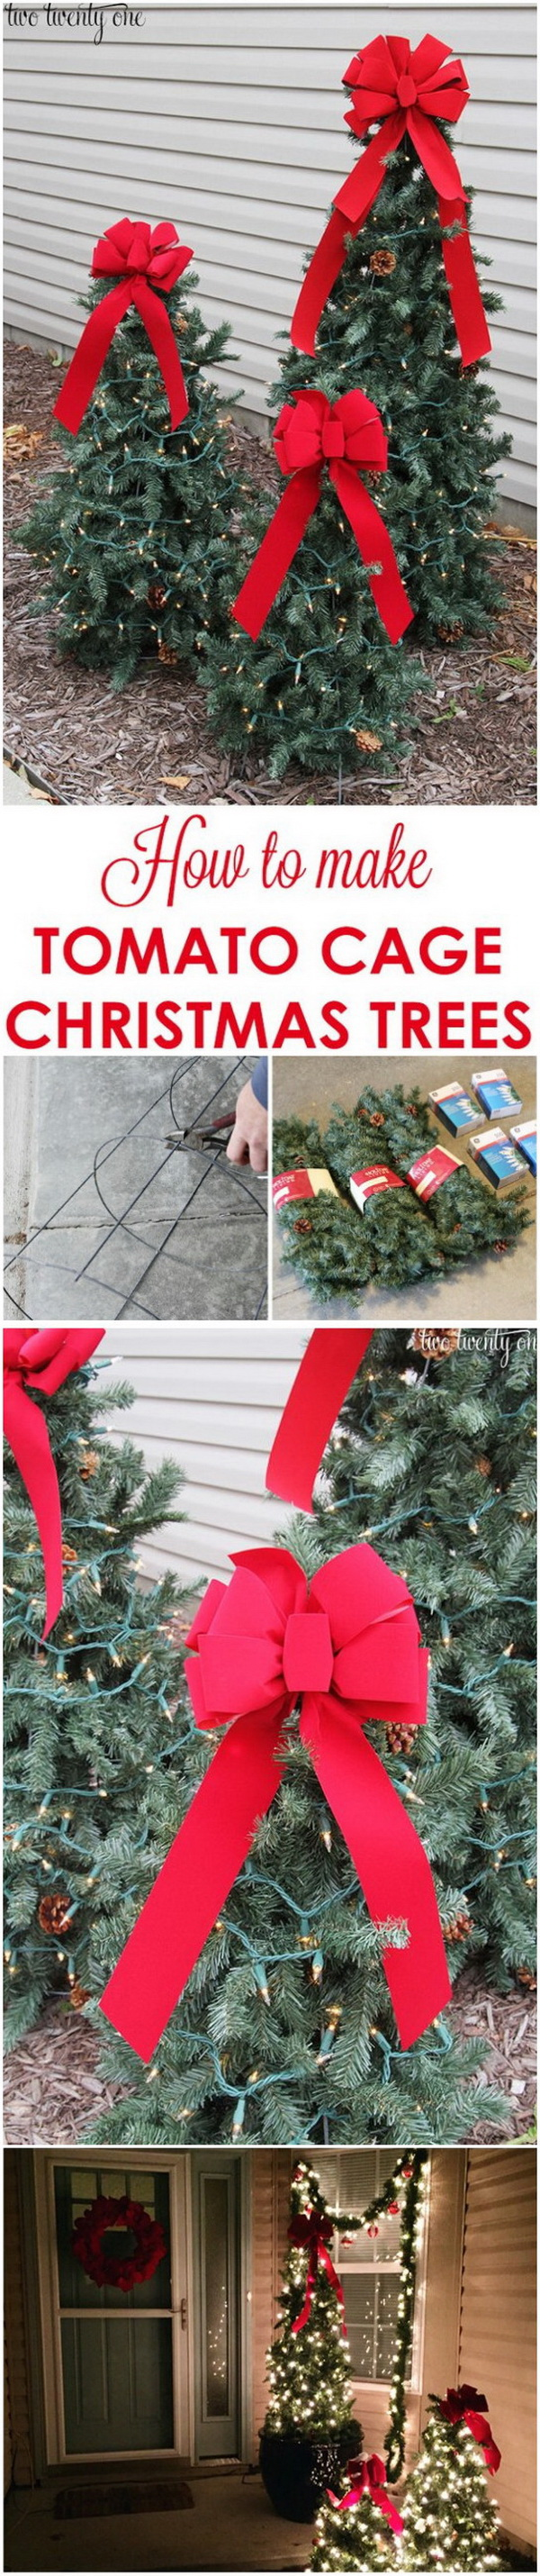 tiered tomato cage christmas trees make outdoor christmas trees with a tomato cage them